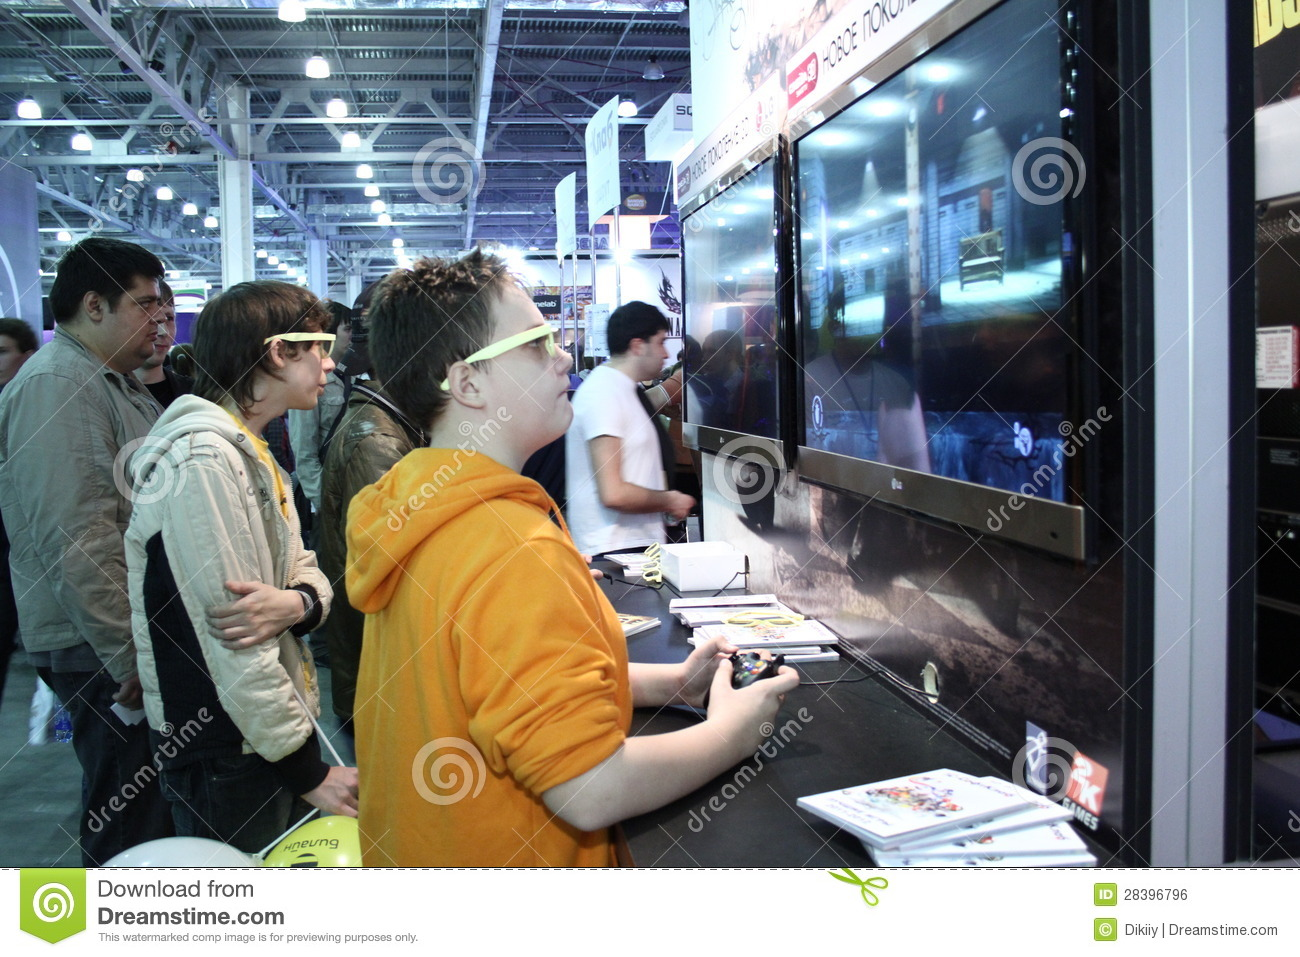 videogames and young people 10 advantages and disadvantages of violent video games many people believe that there is a link between the young people's exposure to violence and their idea about this act of aggression as an acceptable behavior and even an effective strategy in resolving conflicts.